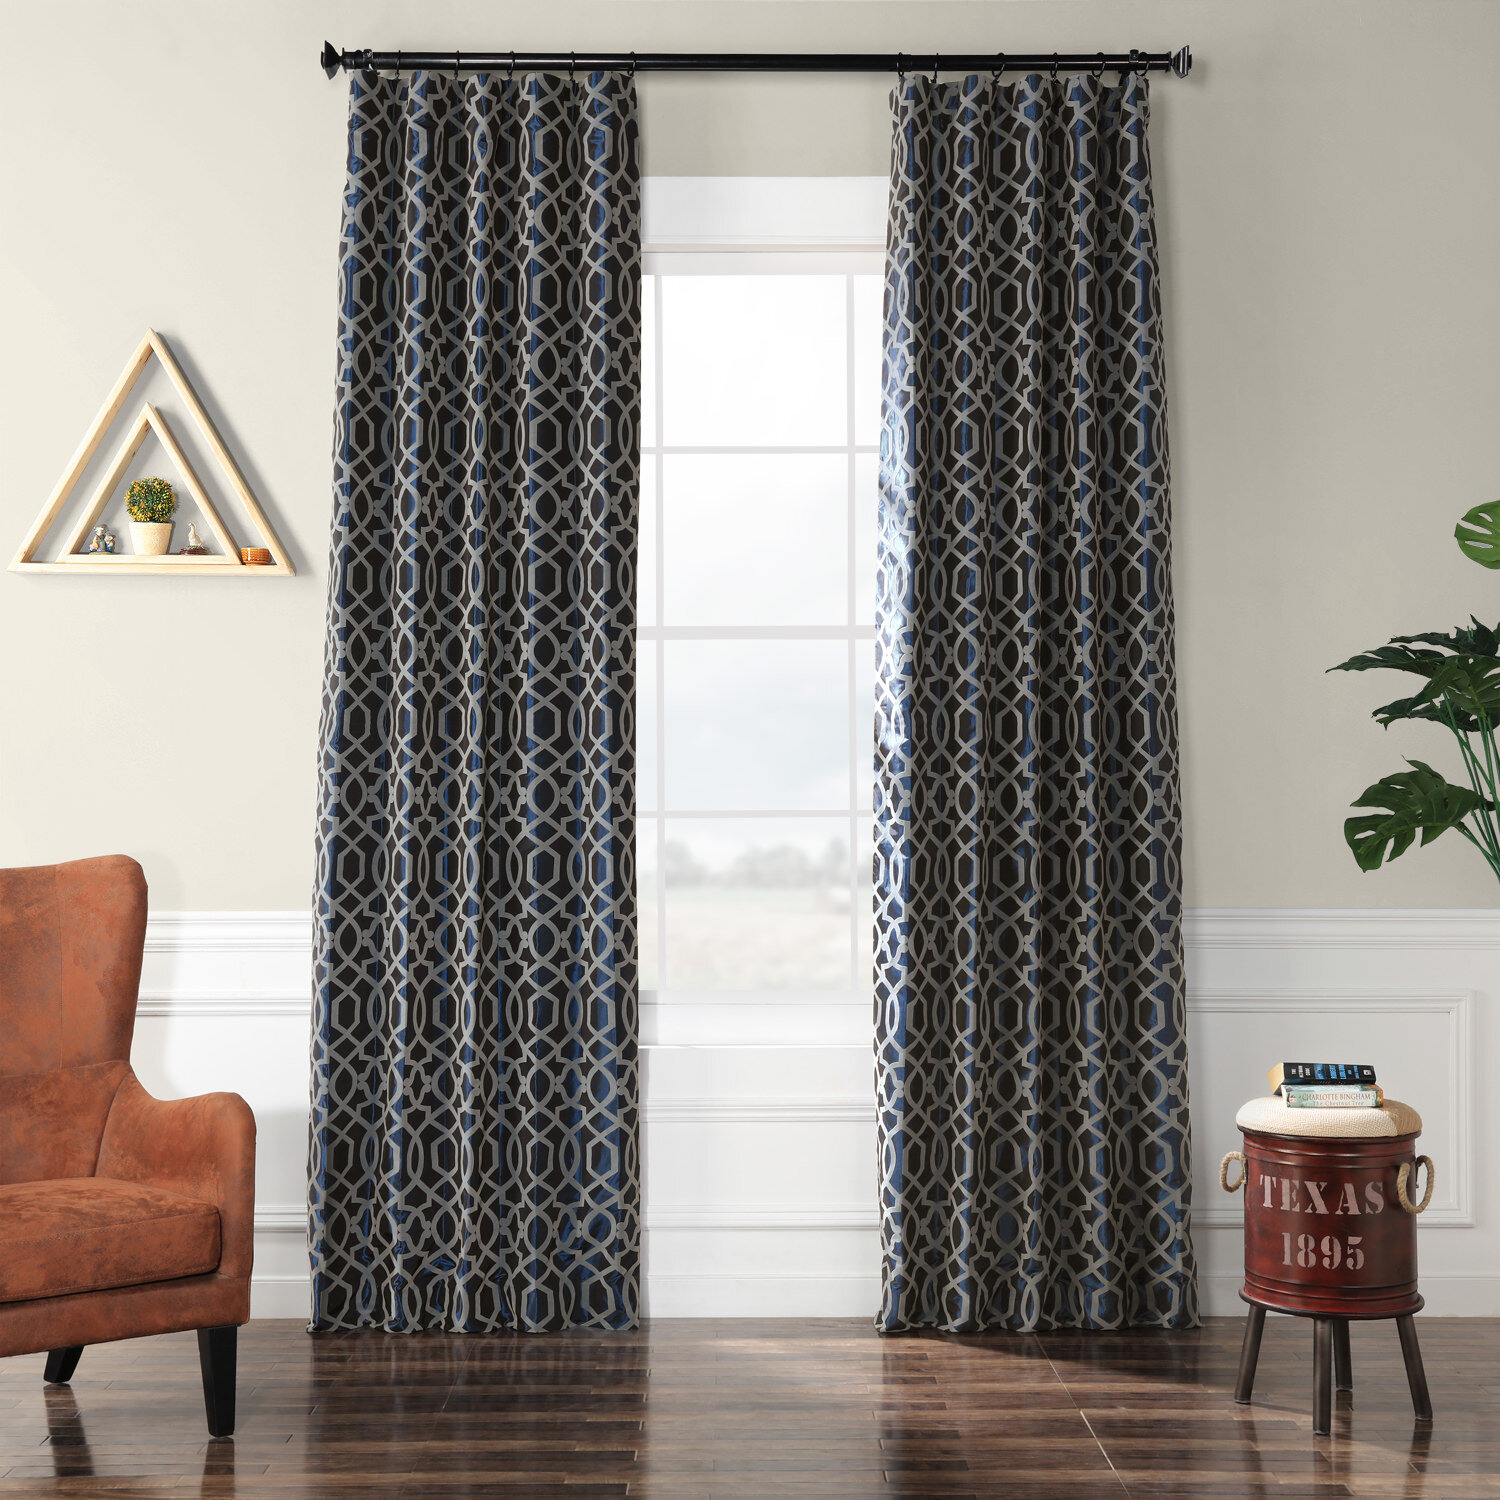 Geometric World Menagerie Curtains Drapes You Ll Love In 2021 Wayfair